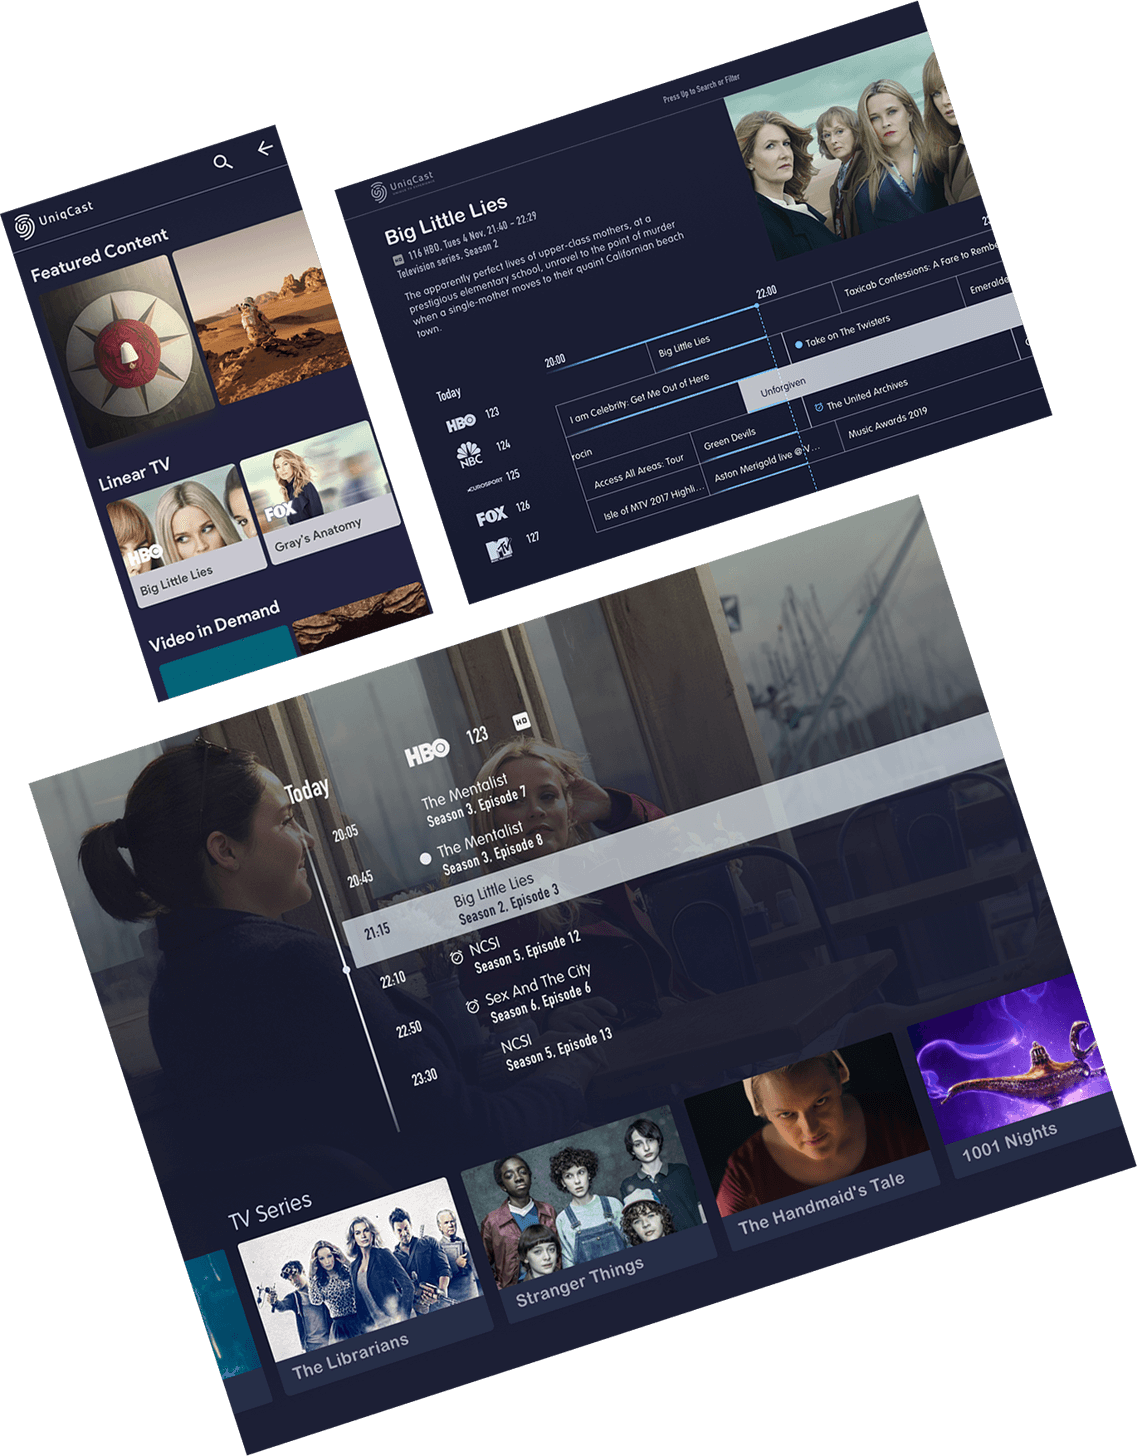 UniqCast Turnkey OTT / DVB Solution enables cable, DTT and DTH providers to introduce interactivity and multiscreen features to differentiate toward competitors